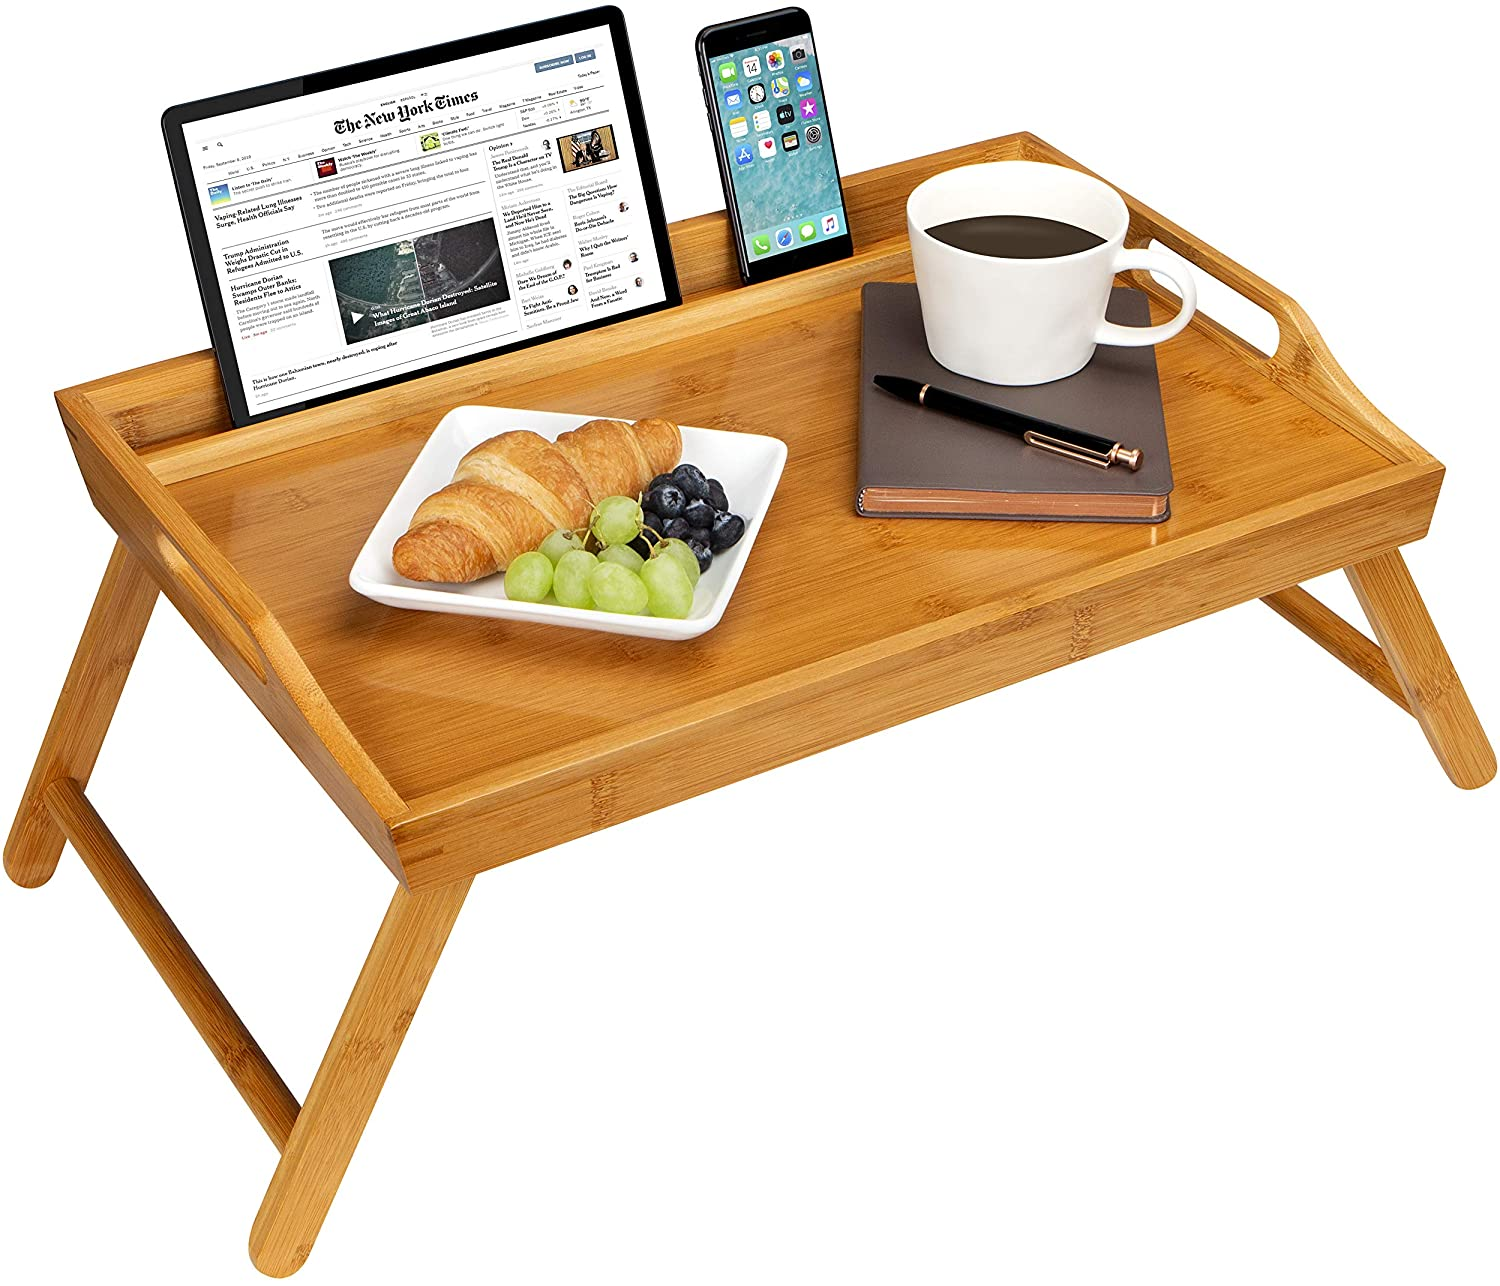 mothers-day-gifts-from-son-tray